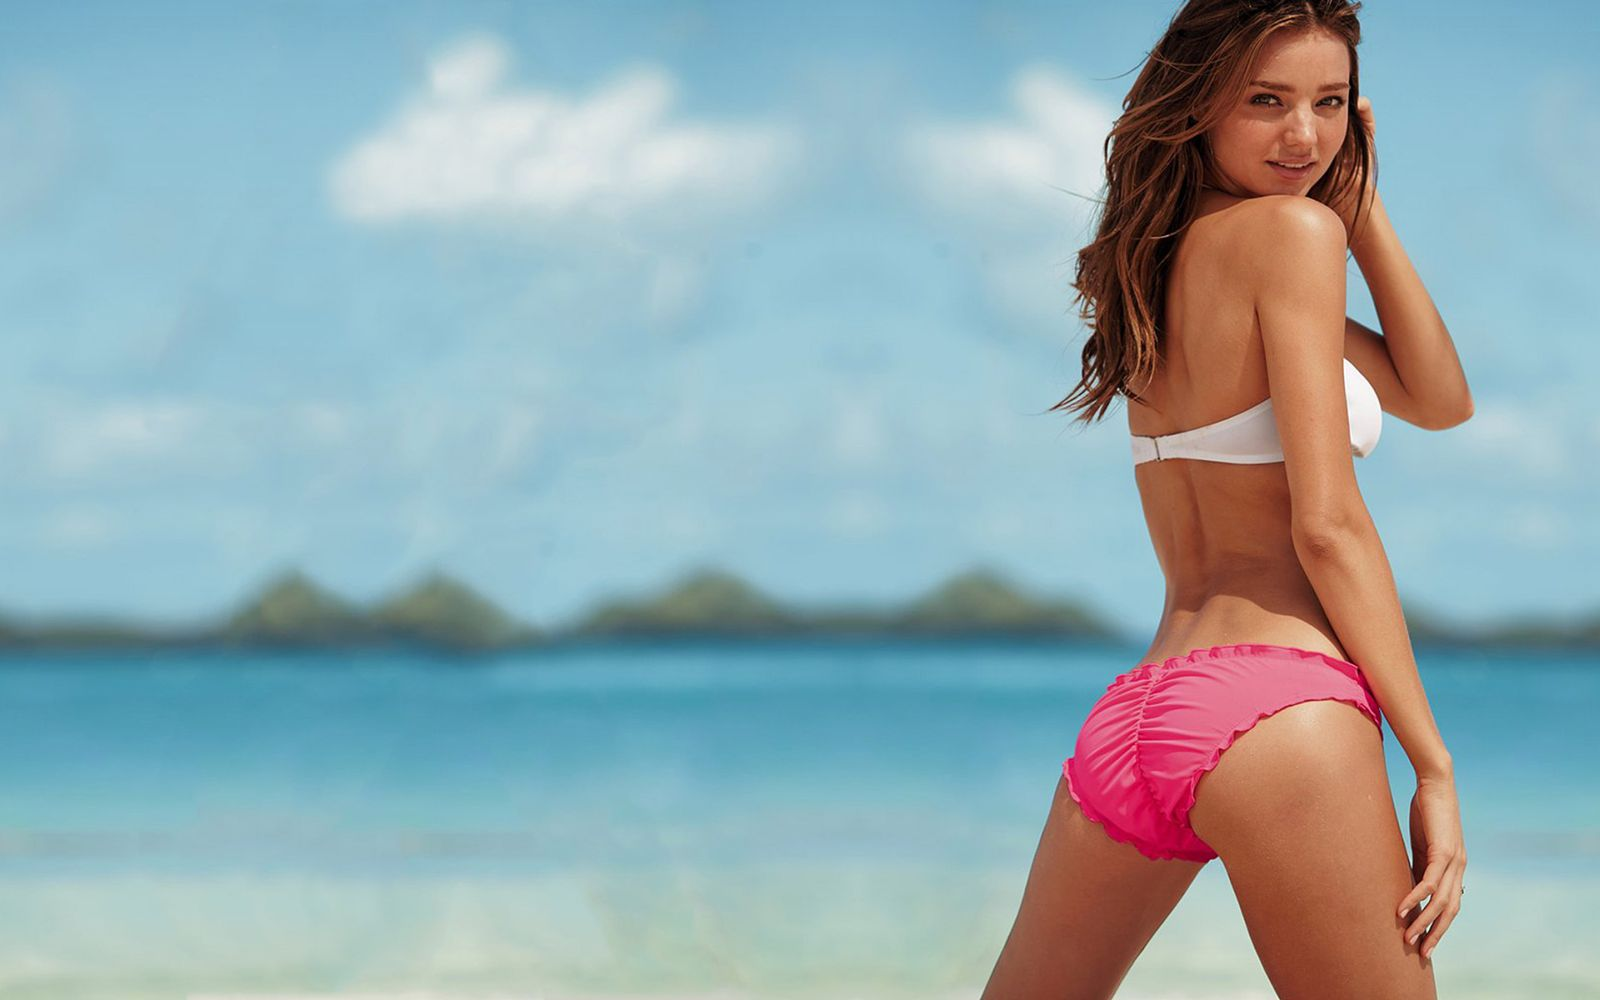 miranda_kerr_wallpaper_002